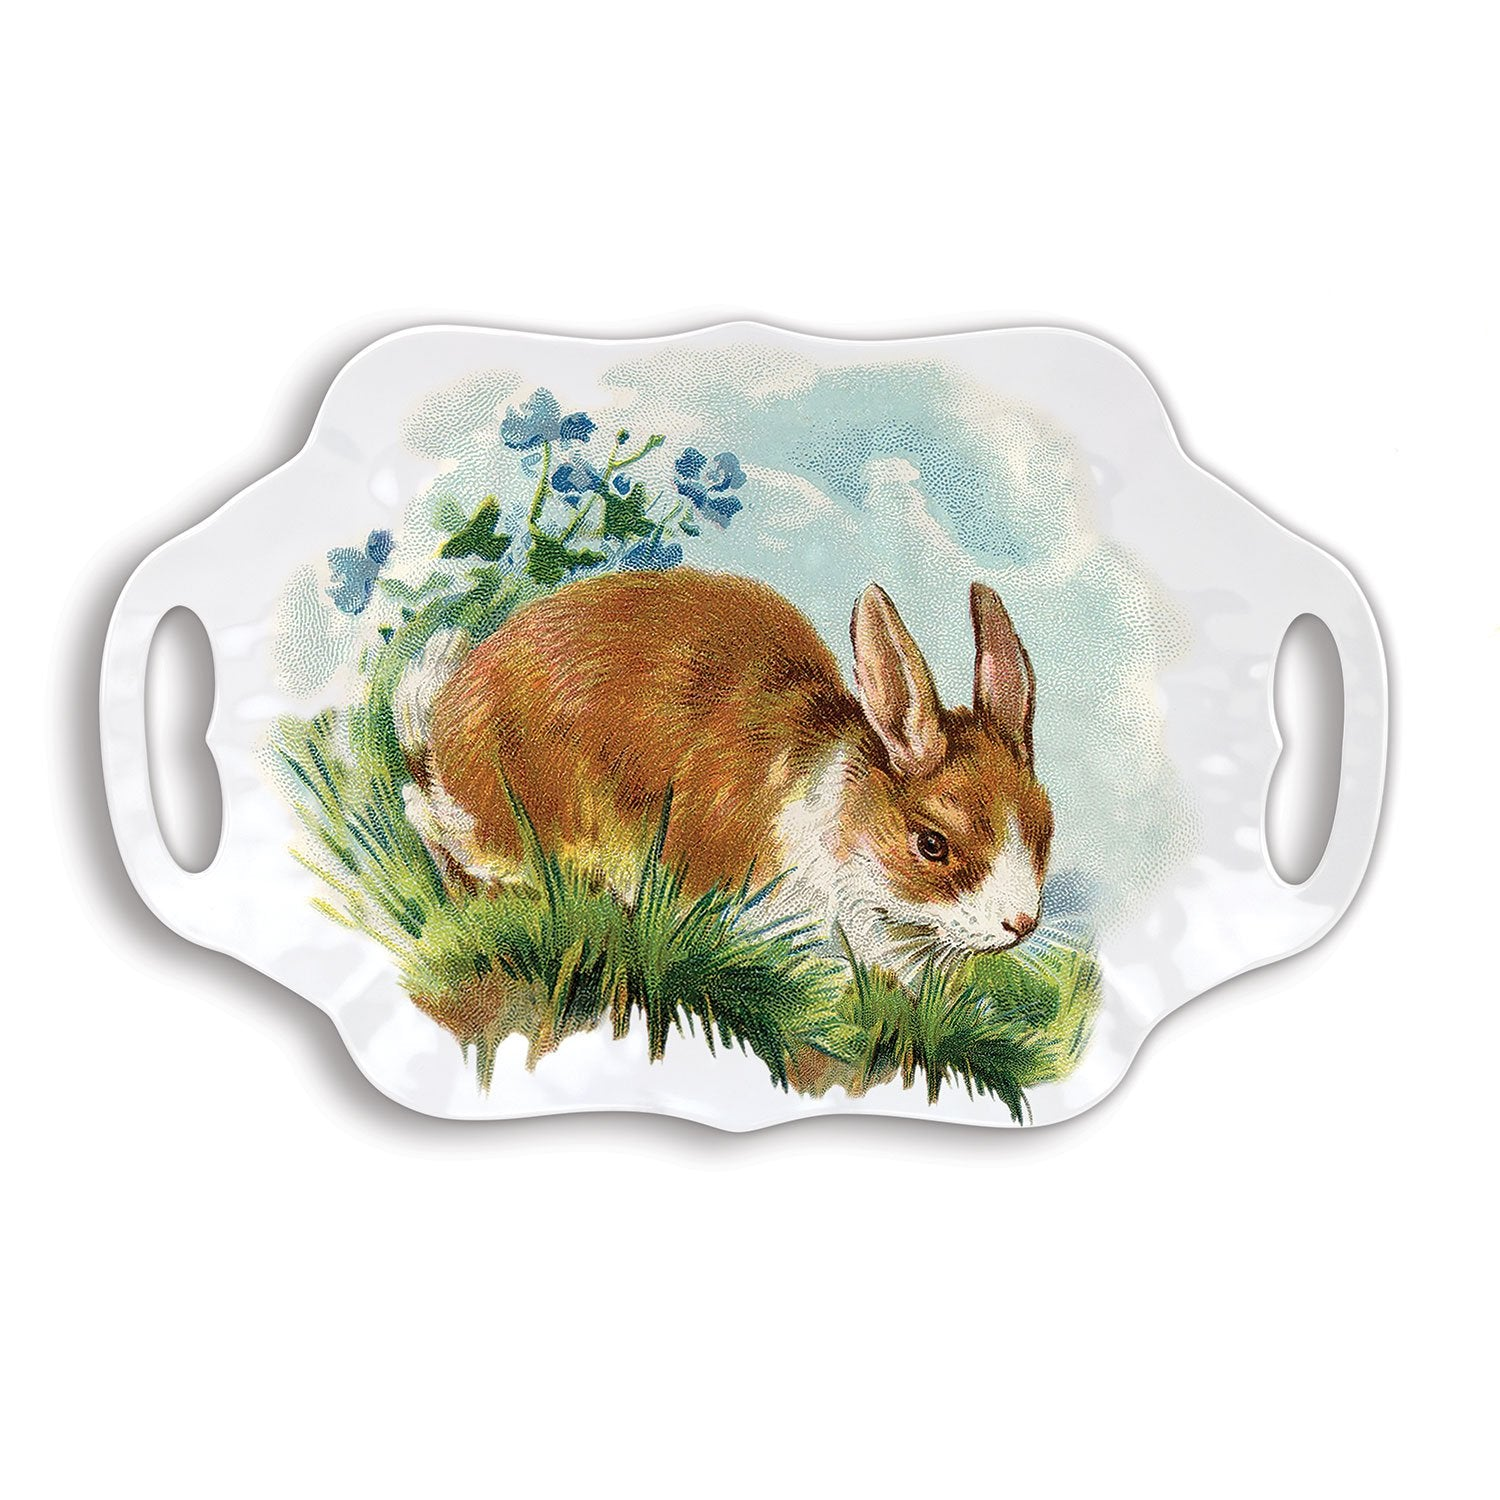 Bunny Hollow Melamine Serveware Serving Tray